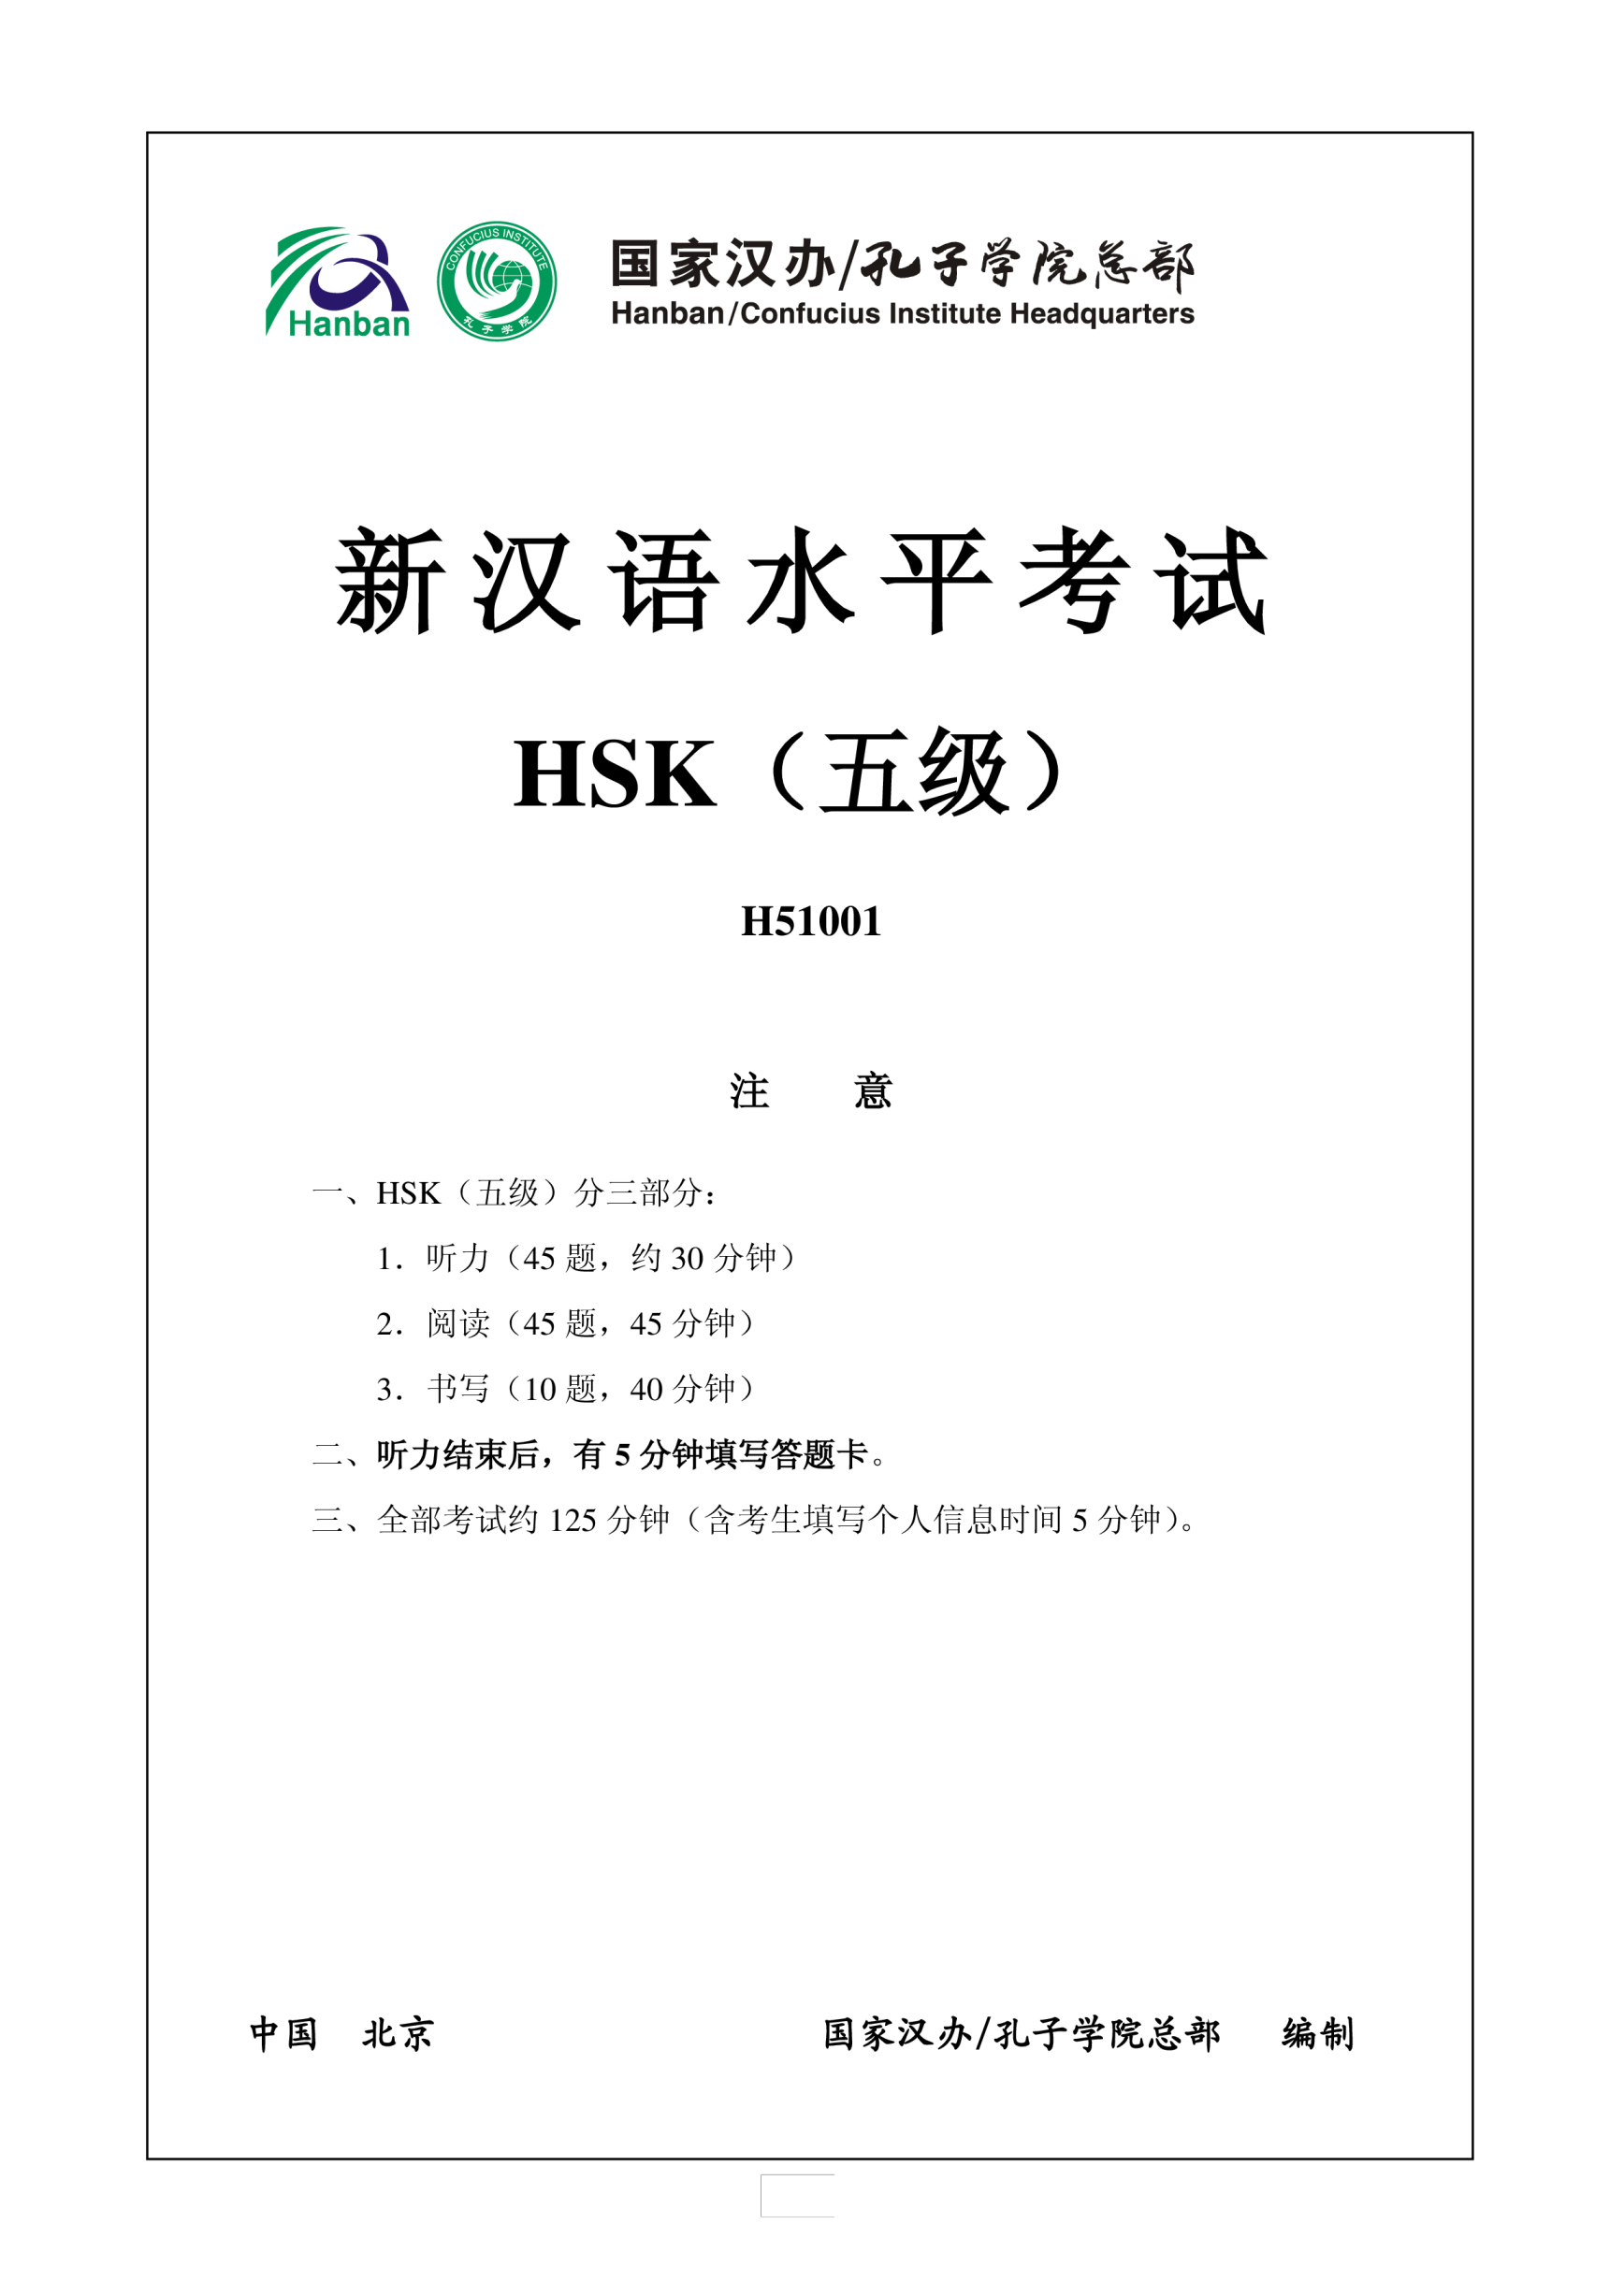 template preview imageHSK 5 H51001 Chinese Exam incl Audio and Answers